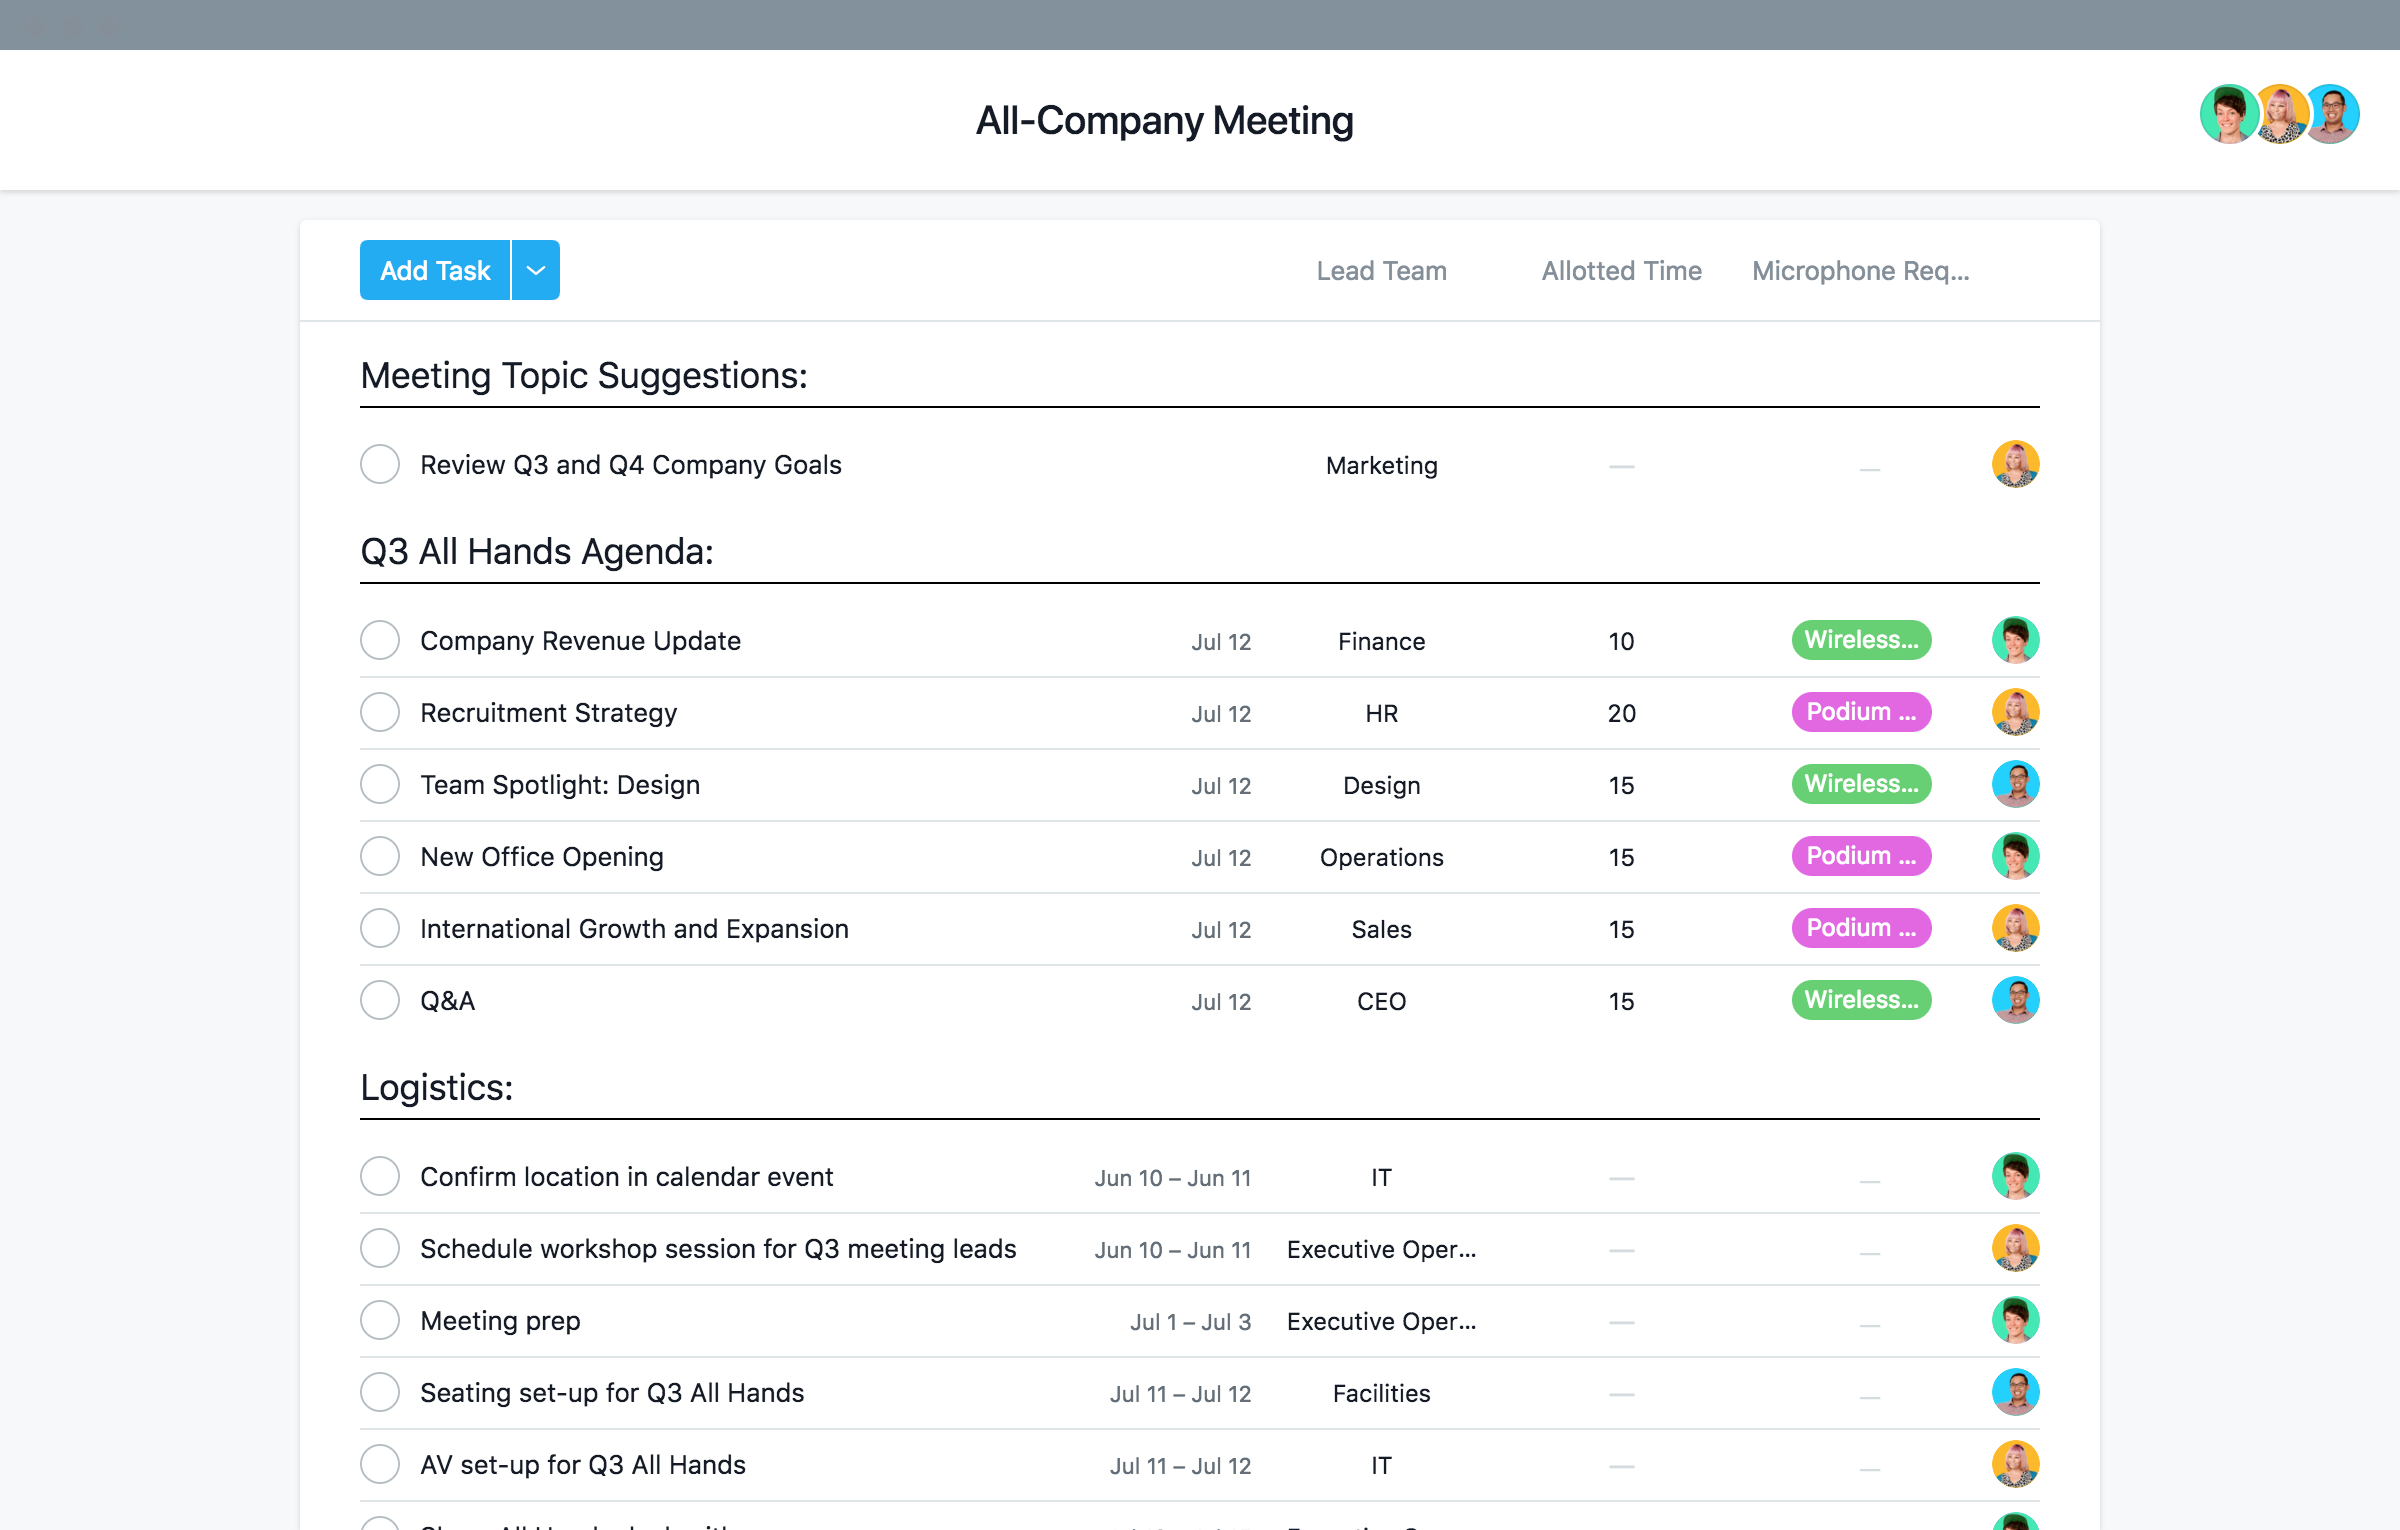 Staff All Hands Meeting Agenda Template Asana within sizing 2400 X 1530